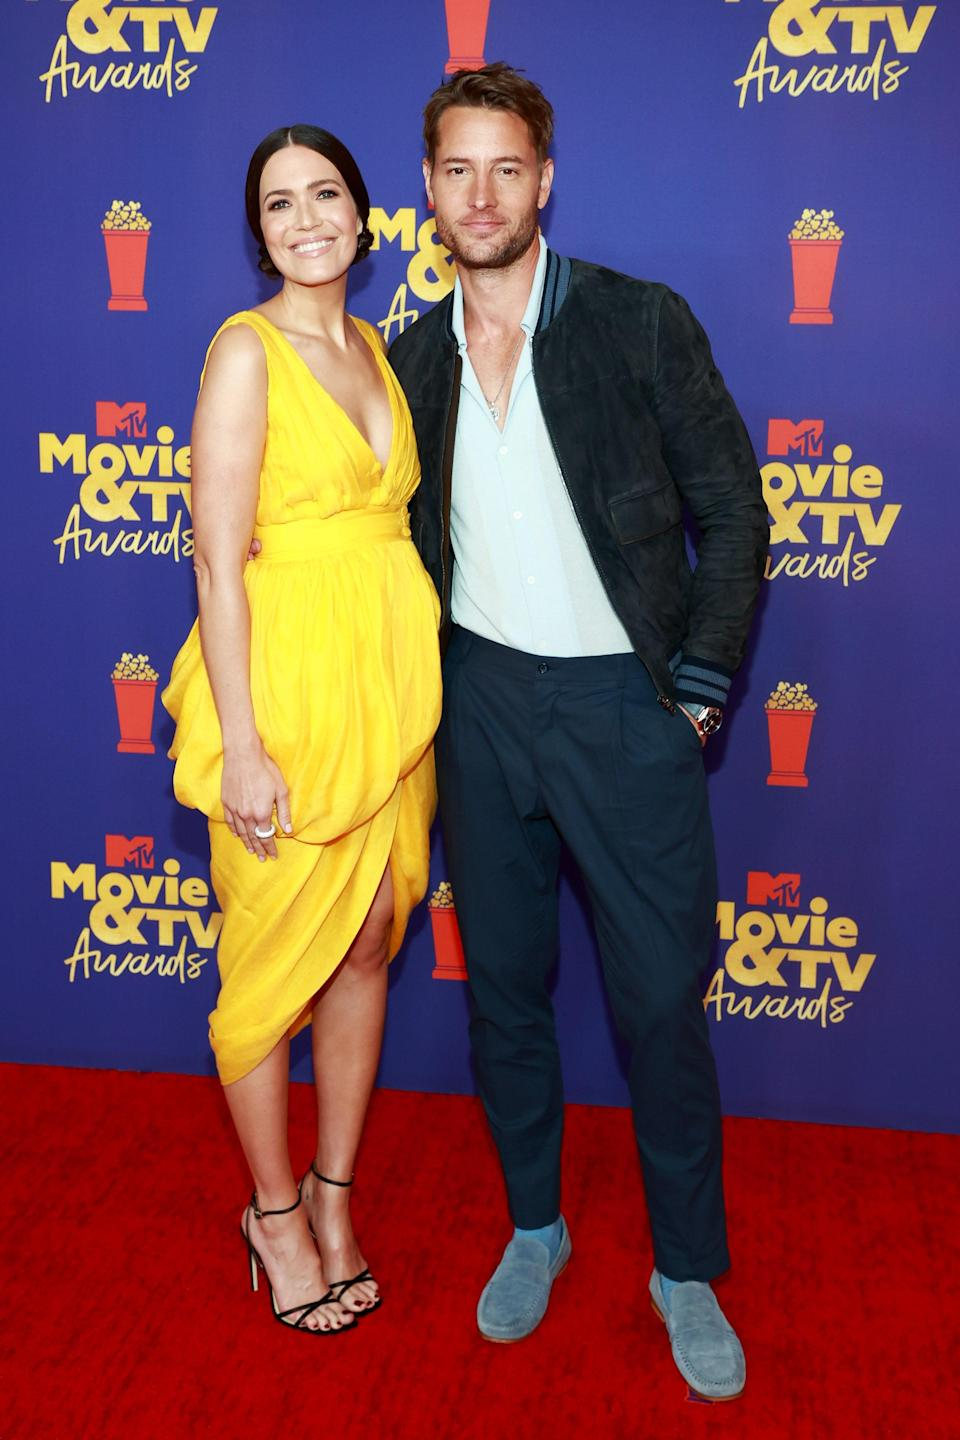 The red carpet shined a little brighter thanks to Mandy Moore's golden yellow dress. Styled by Kevin Michael Ericson, Mandy was glowing in a pair of strappy black Jimmy Choo heels and a layered Altuzarra dress. Justin Hartley, her This Is Us co-star, opted for a casual take on the classic suit.